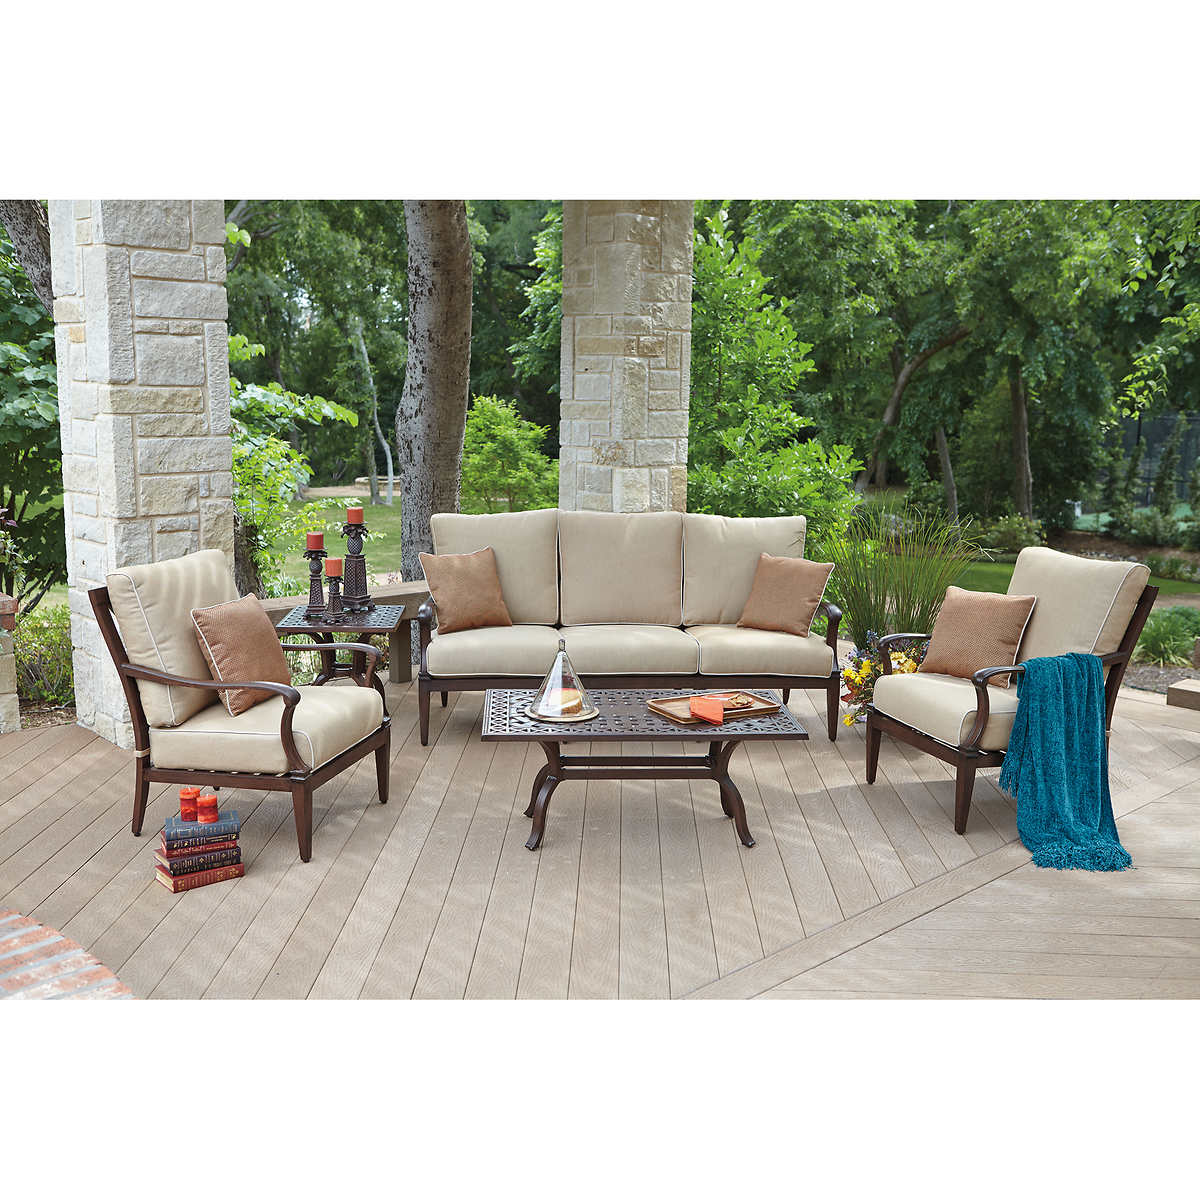 Siena 5-piece Seating Set by Woodard - Seating Sets Costco